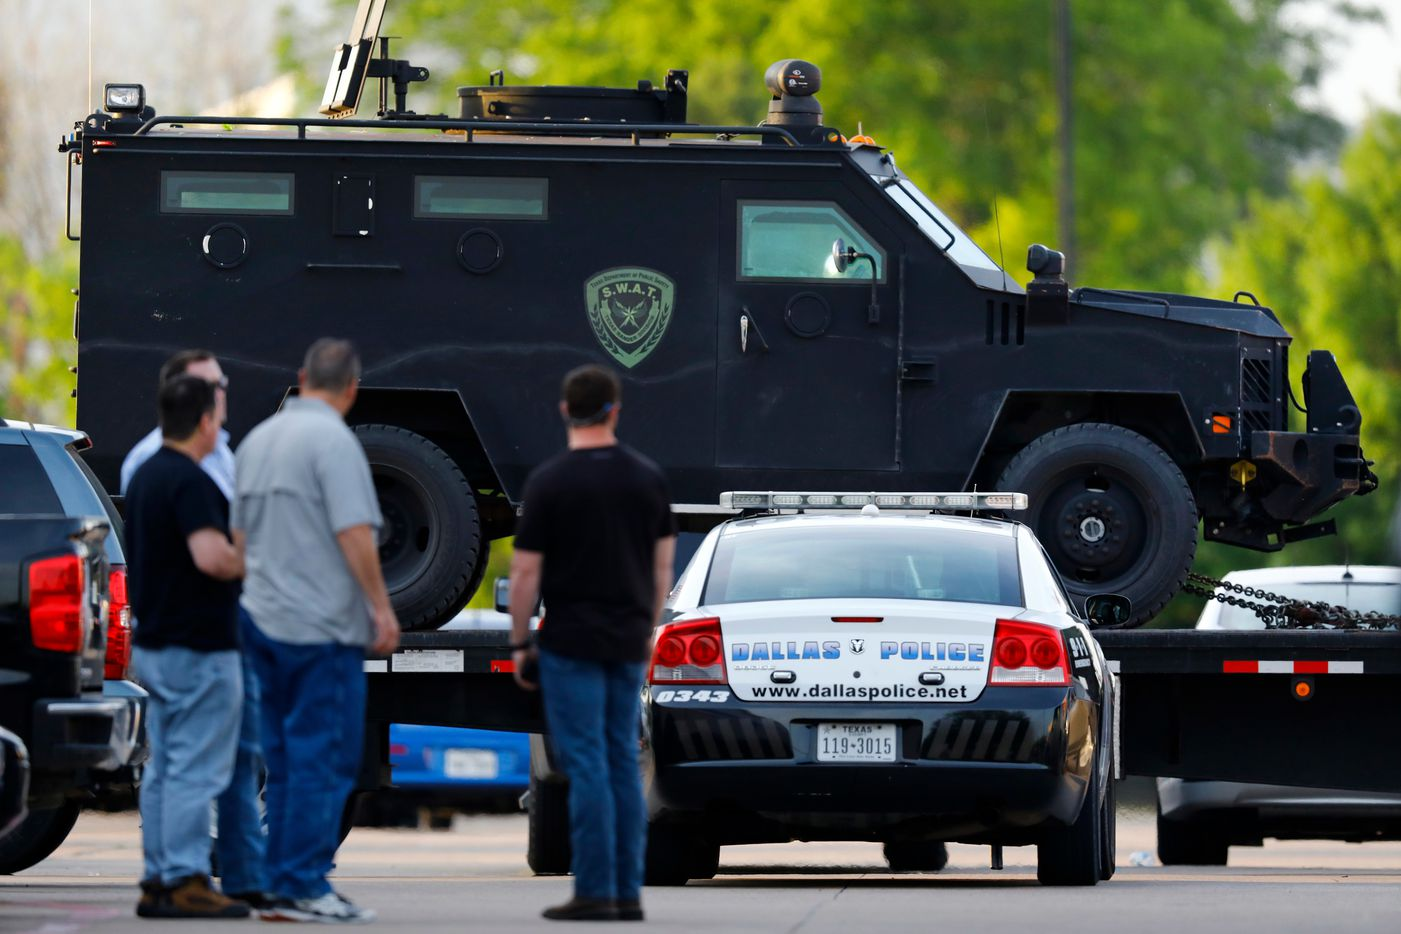 People watch as the Texas Department of Public Safety rolls in heavy duty vehicles to the Home Depot parking lot after two police officers and a civilian were shot by a man outside the home improvement store on April 24, 2018, in Dallas. The officers were critically wounded in the shooting, according to officials.